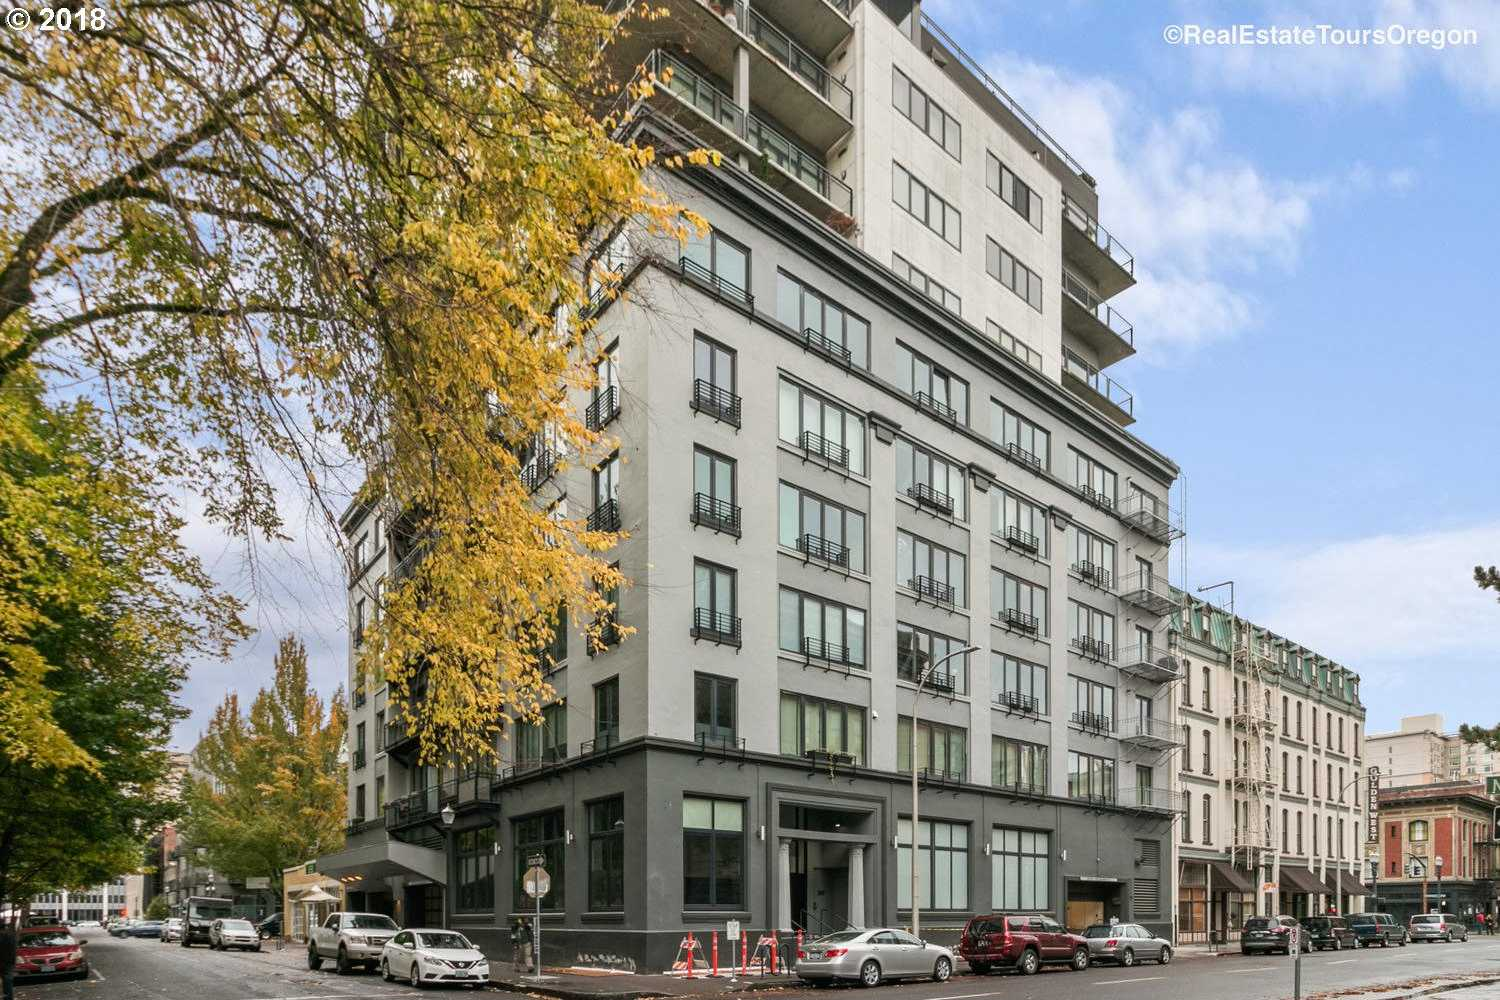 $1,300,000 - 2Br/2Ba -  for Sale in Pearl District, Portland